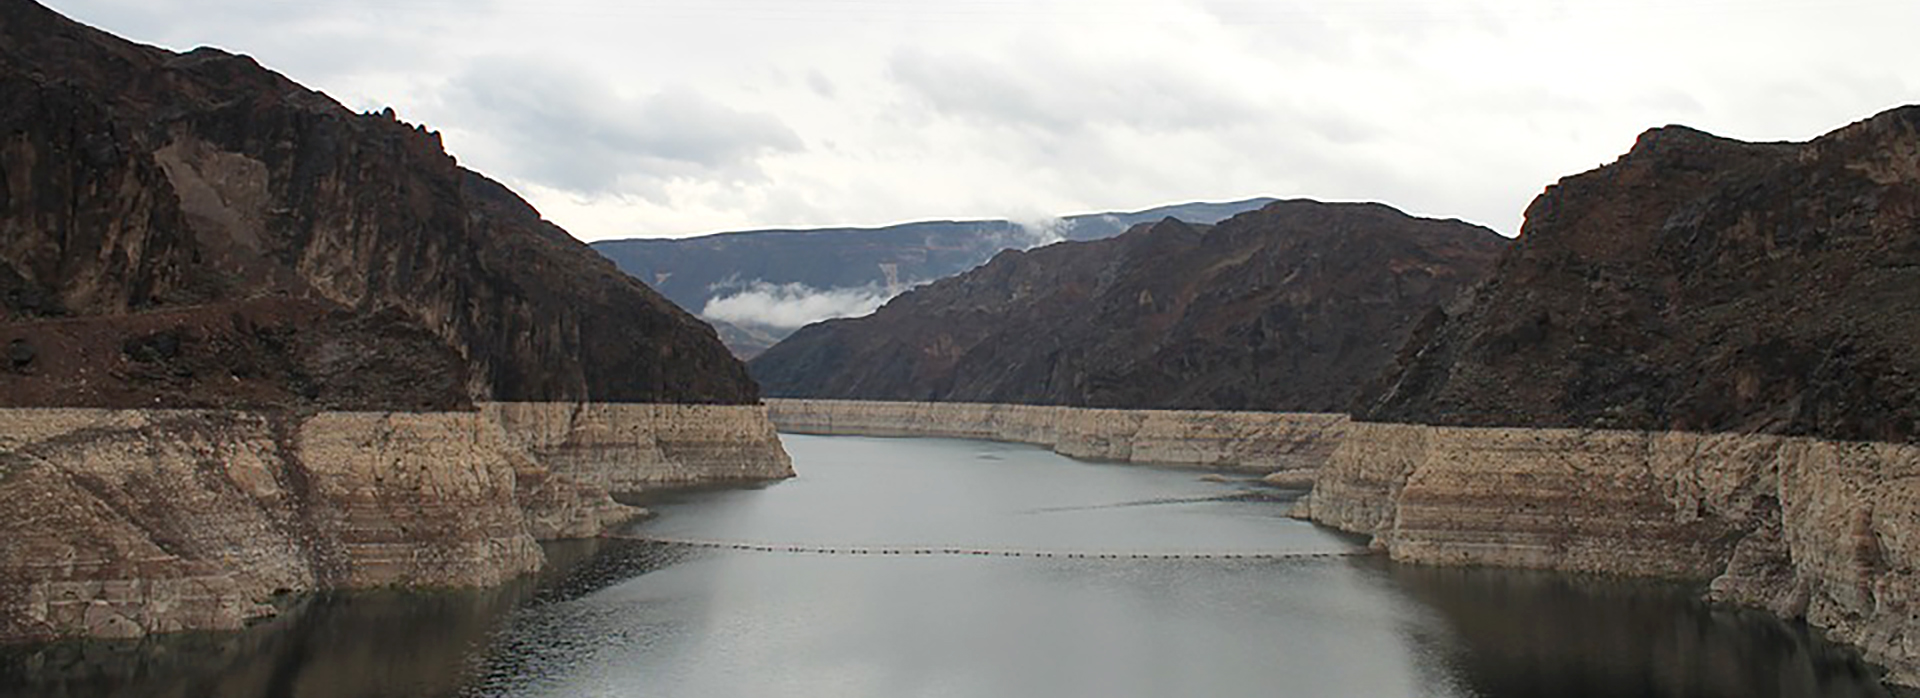 Lake mead cloudy